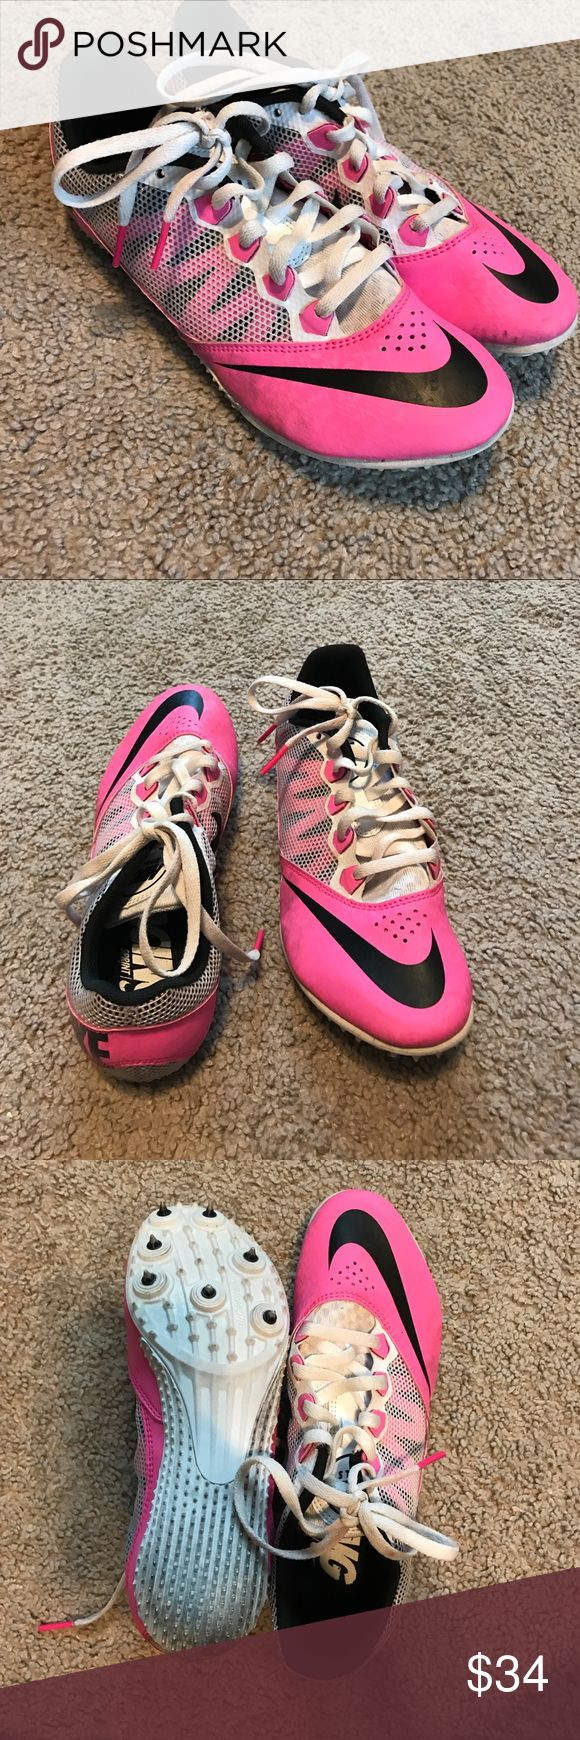 Track and field spikes Used but still in good condition needs new spikes Nike Shoes Sneakers